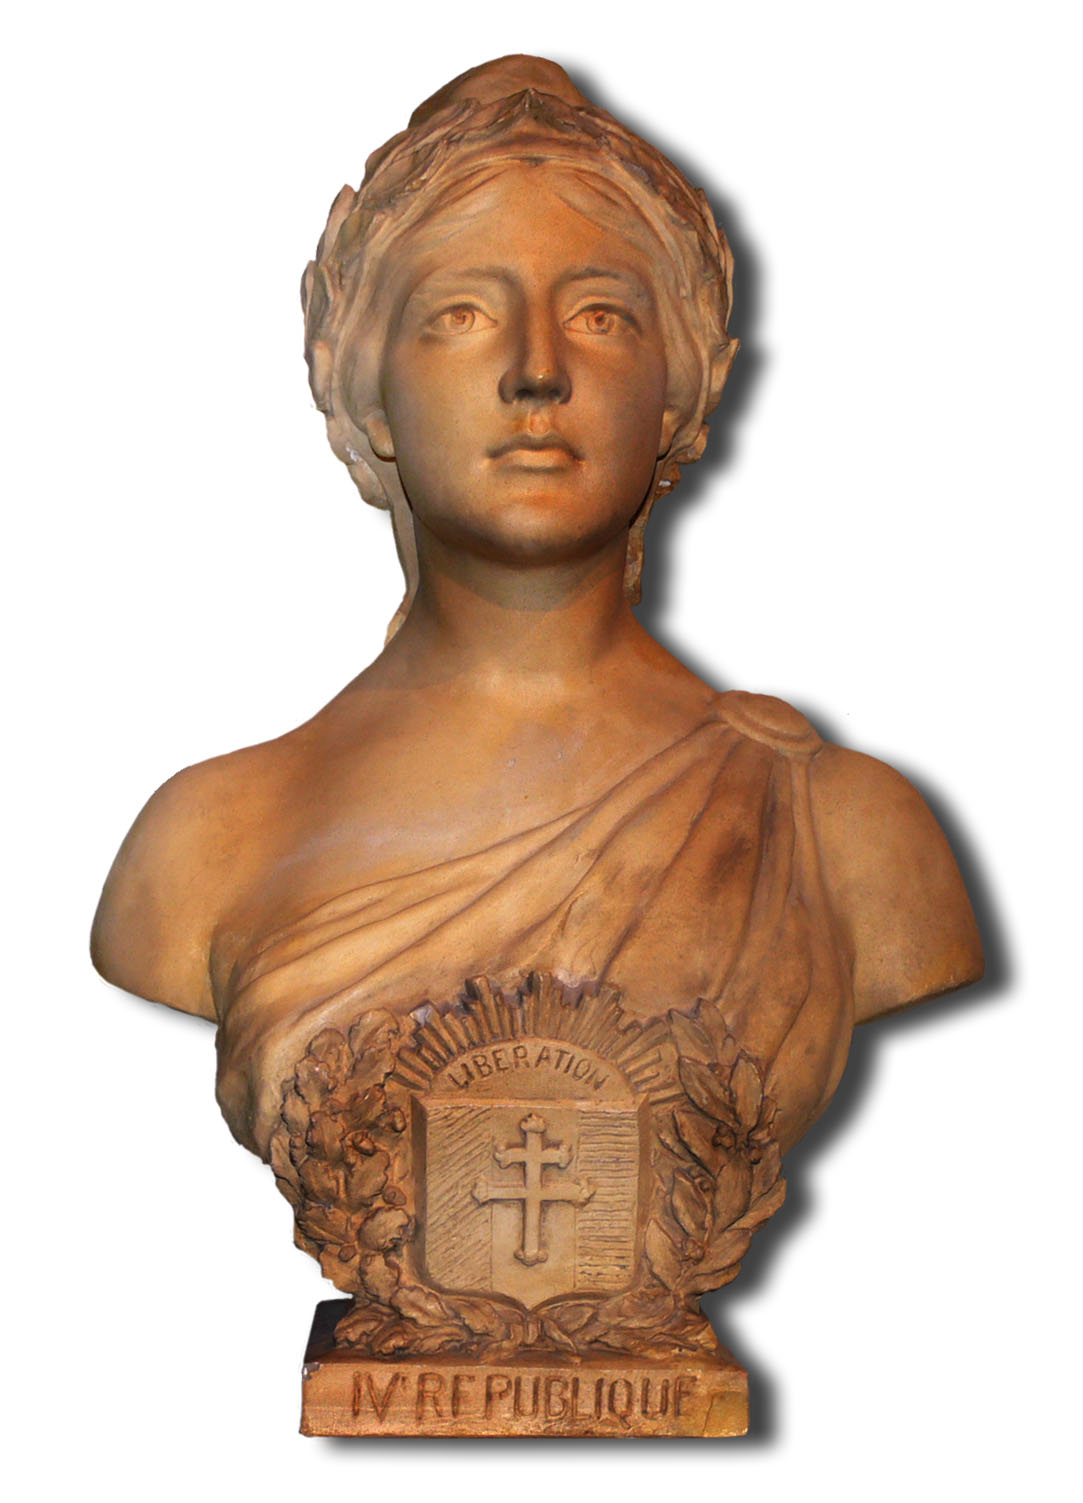 Файл:MARIANNE French symbol of republic2.jpg — Вікіпедія